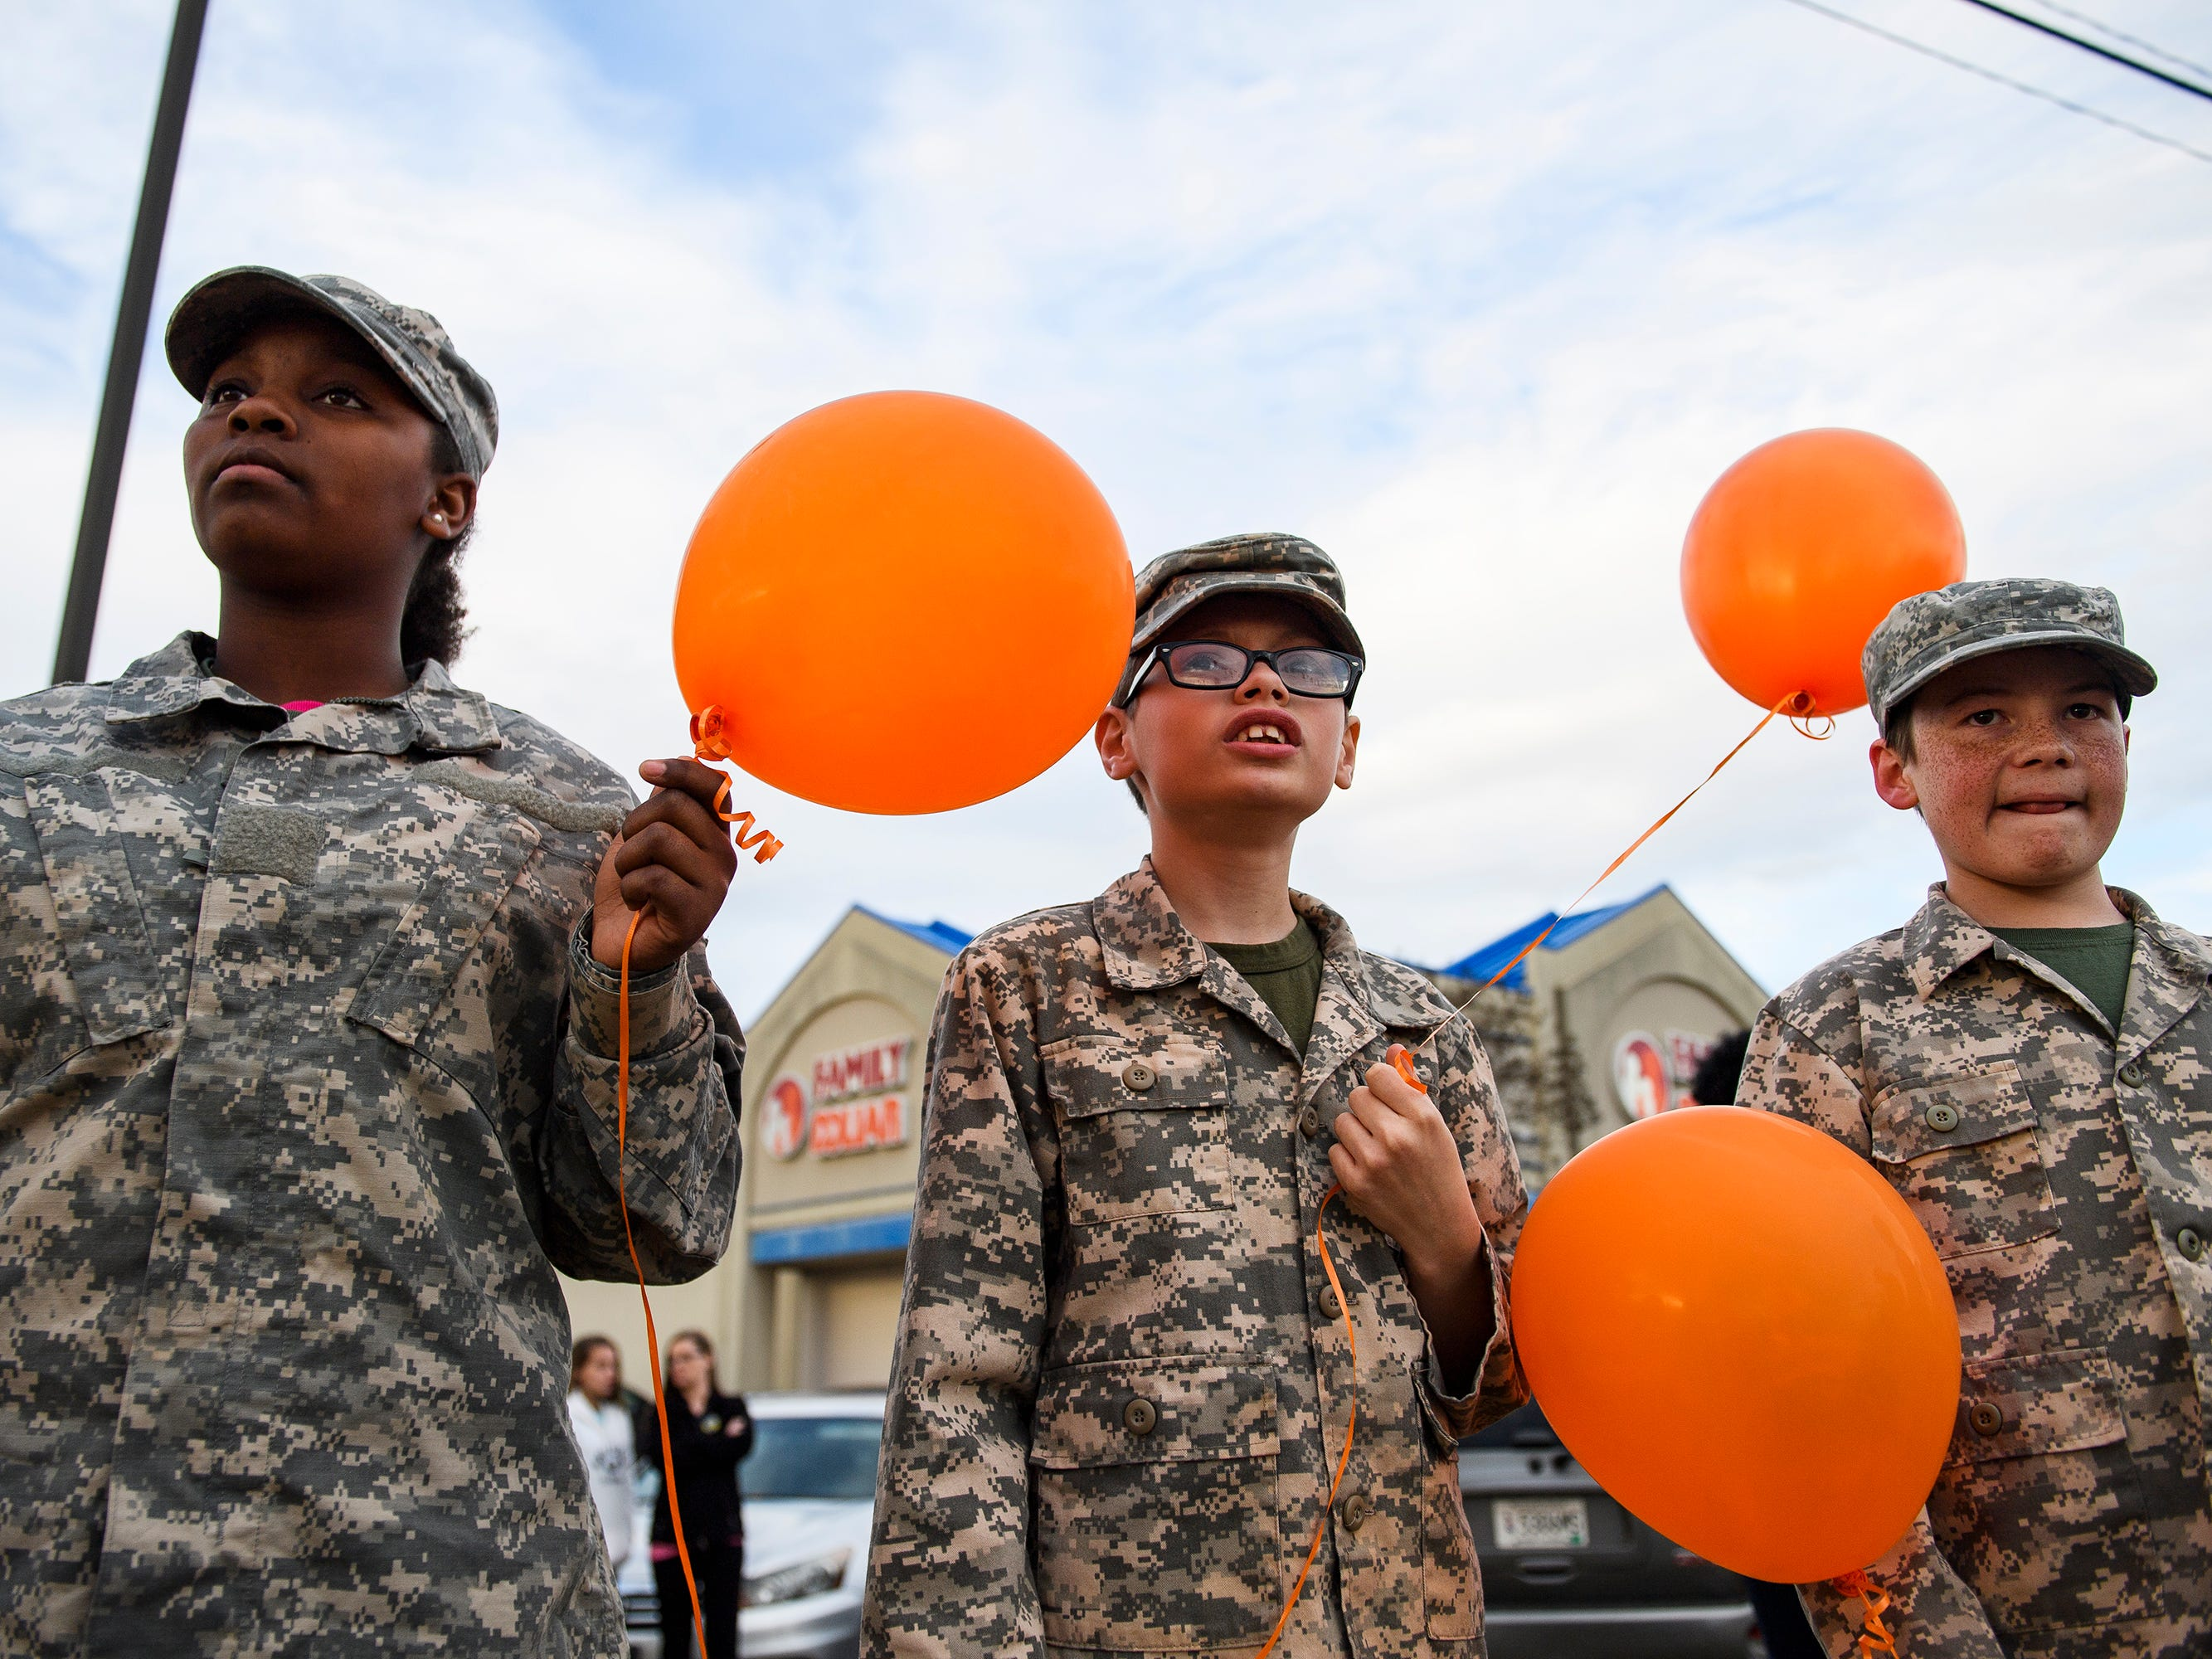 From left, Xenoshha Tate, Donnie Mauldin and Joshua Mauldin hold balloons during a balloon release in honor of Joshua Meeks on East Butler Road in Mauldin on Feb. 4, 2019.